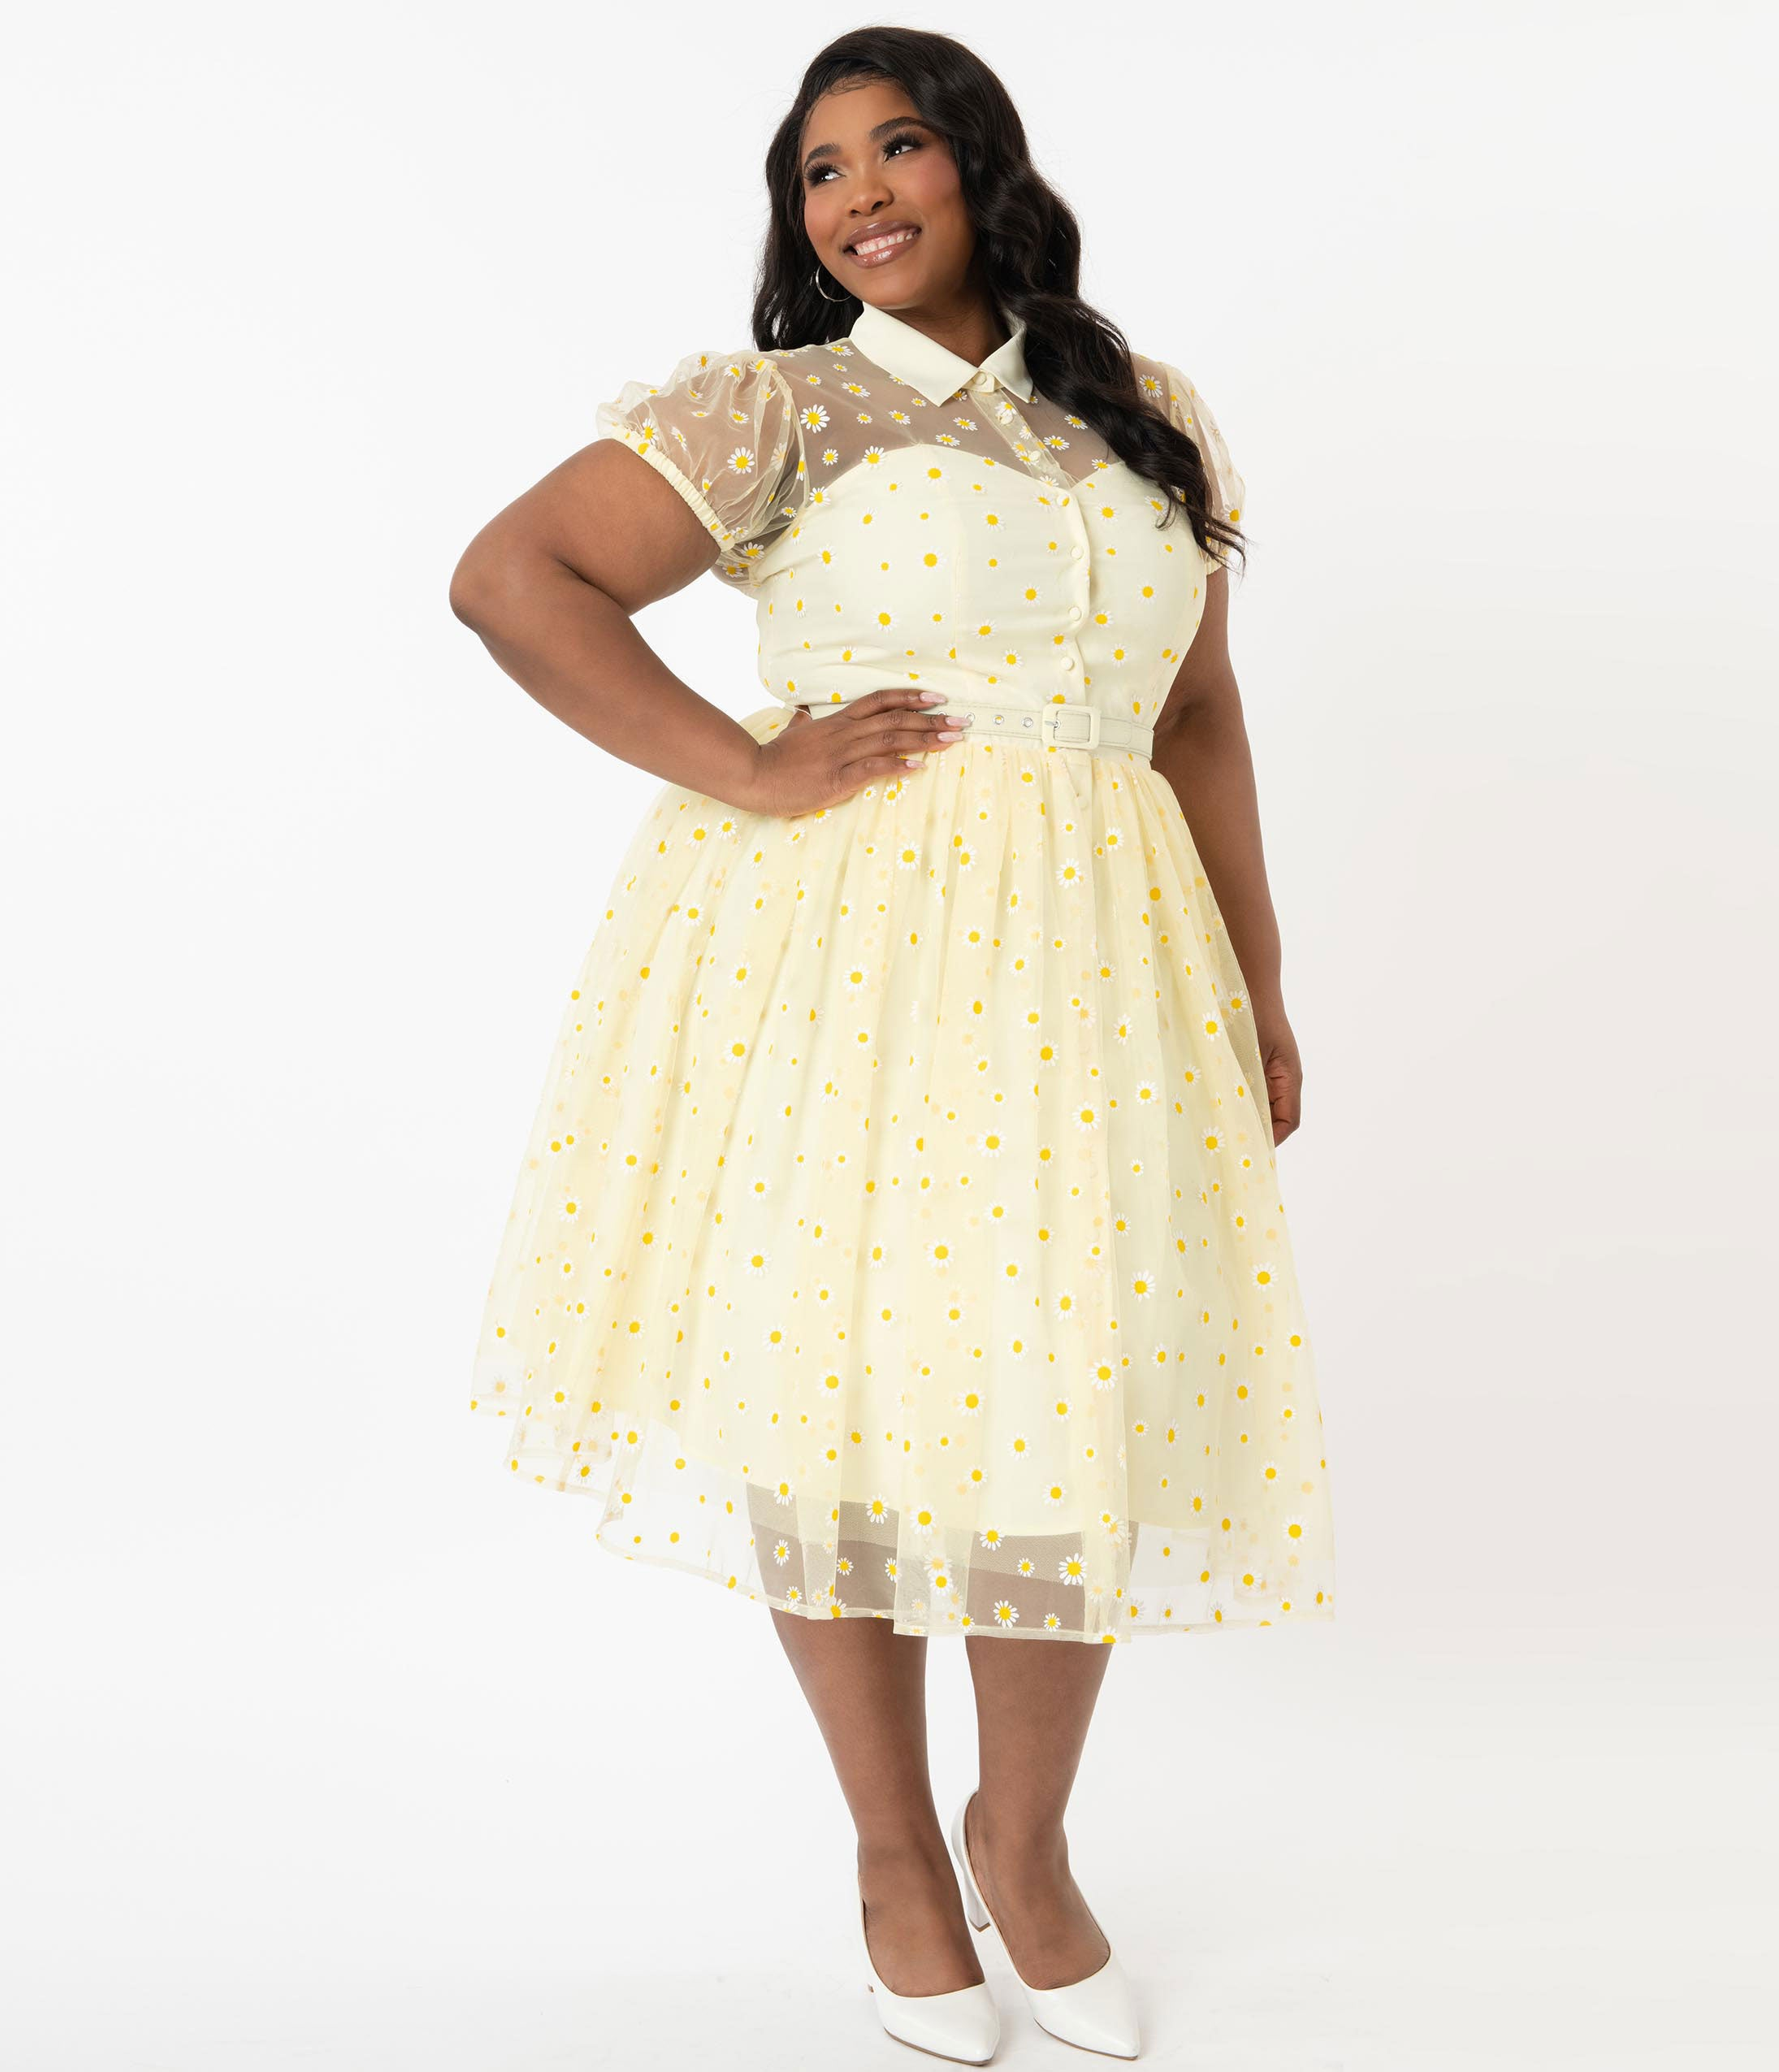 1950s Plus Size Dresses, Swing Dresses Unique Vintage Plus Size Yellow  White Daisy Print Hollie Swing Dress $78.00 AT vintagedancer.com